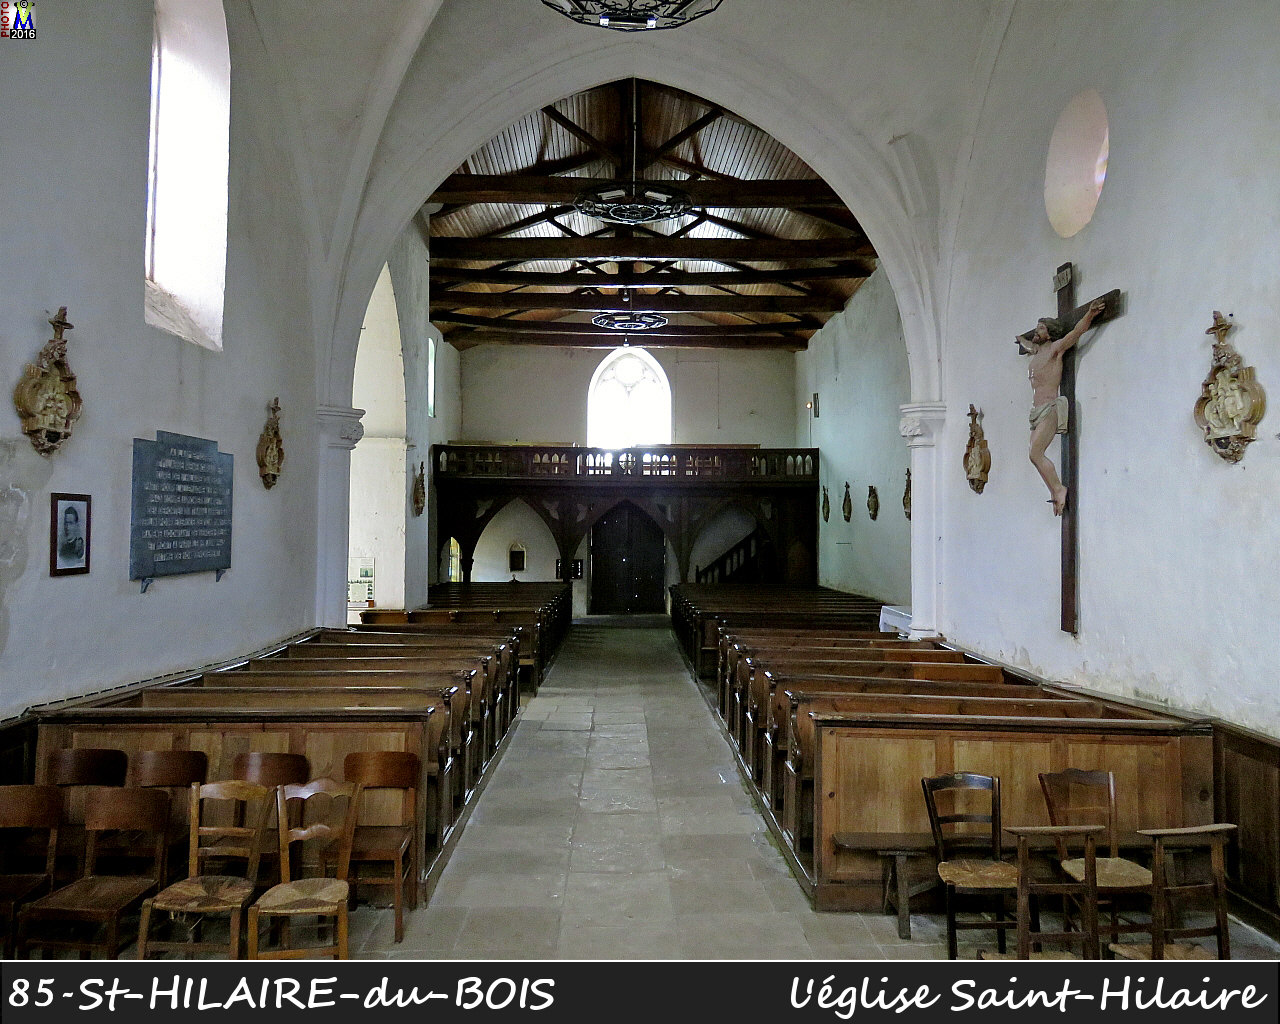 85CAILLERE-StHILAIRE-HILAIRE_eglise_1204.jpg